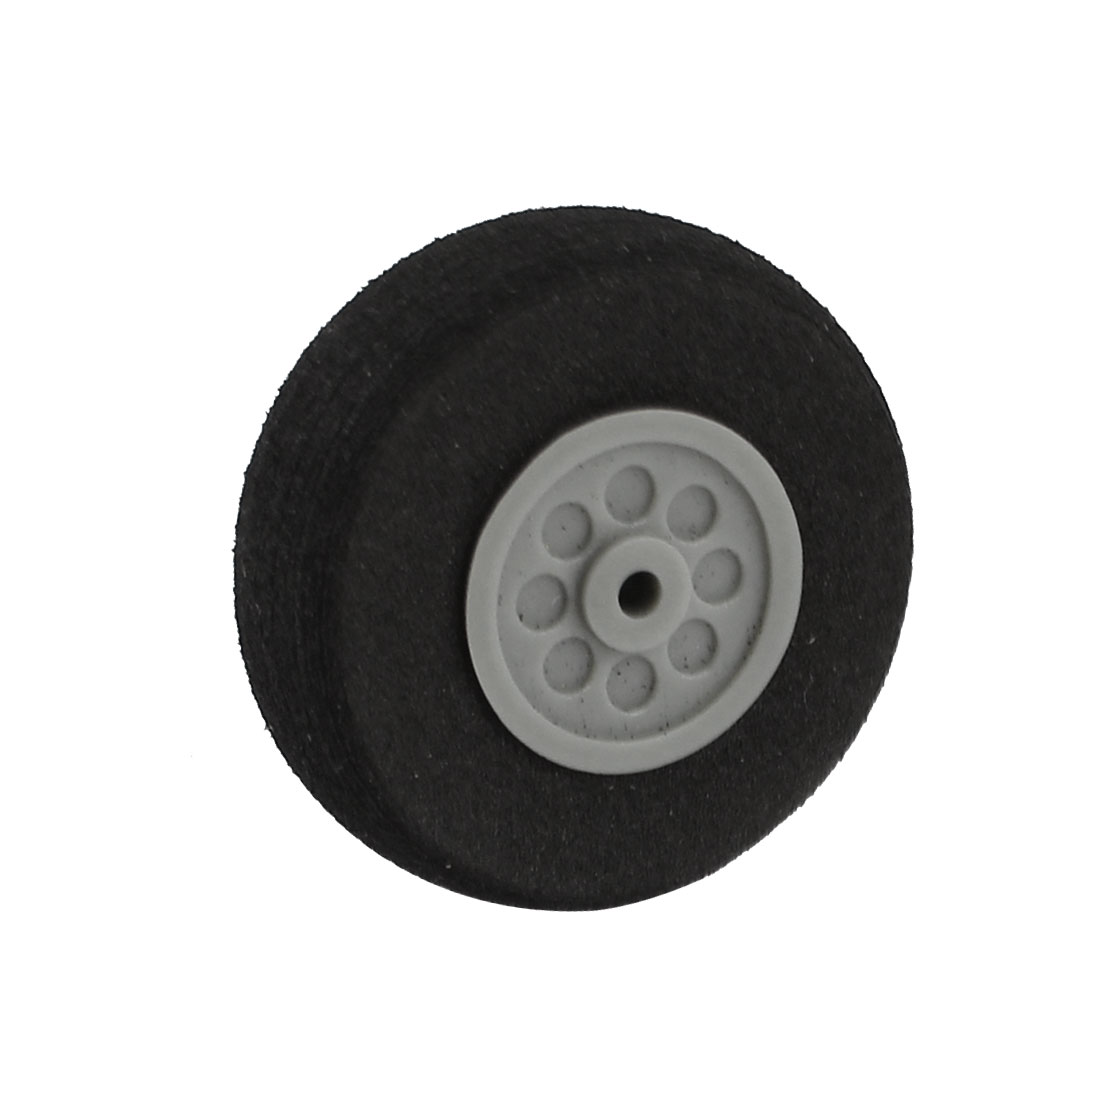 "RC Model Airplane 2mm Shaft Dia Sponge Tire Wheel 30mm 1.2"" Dia"